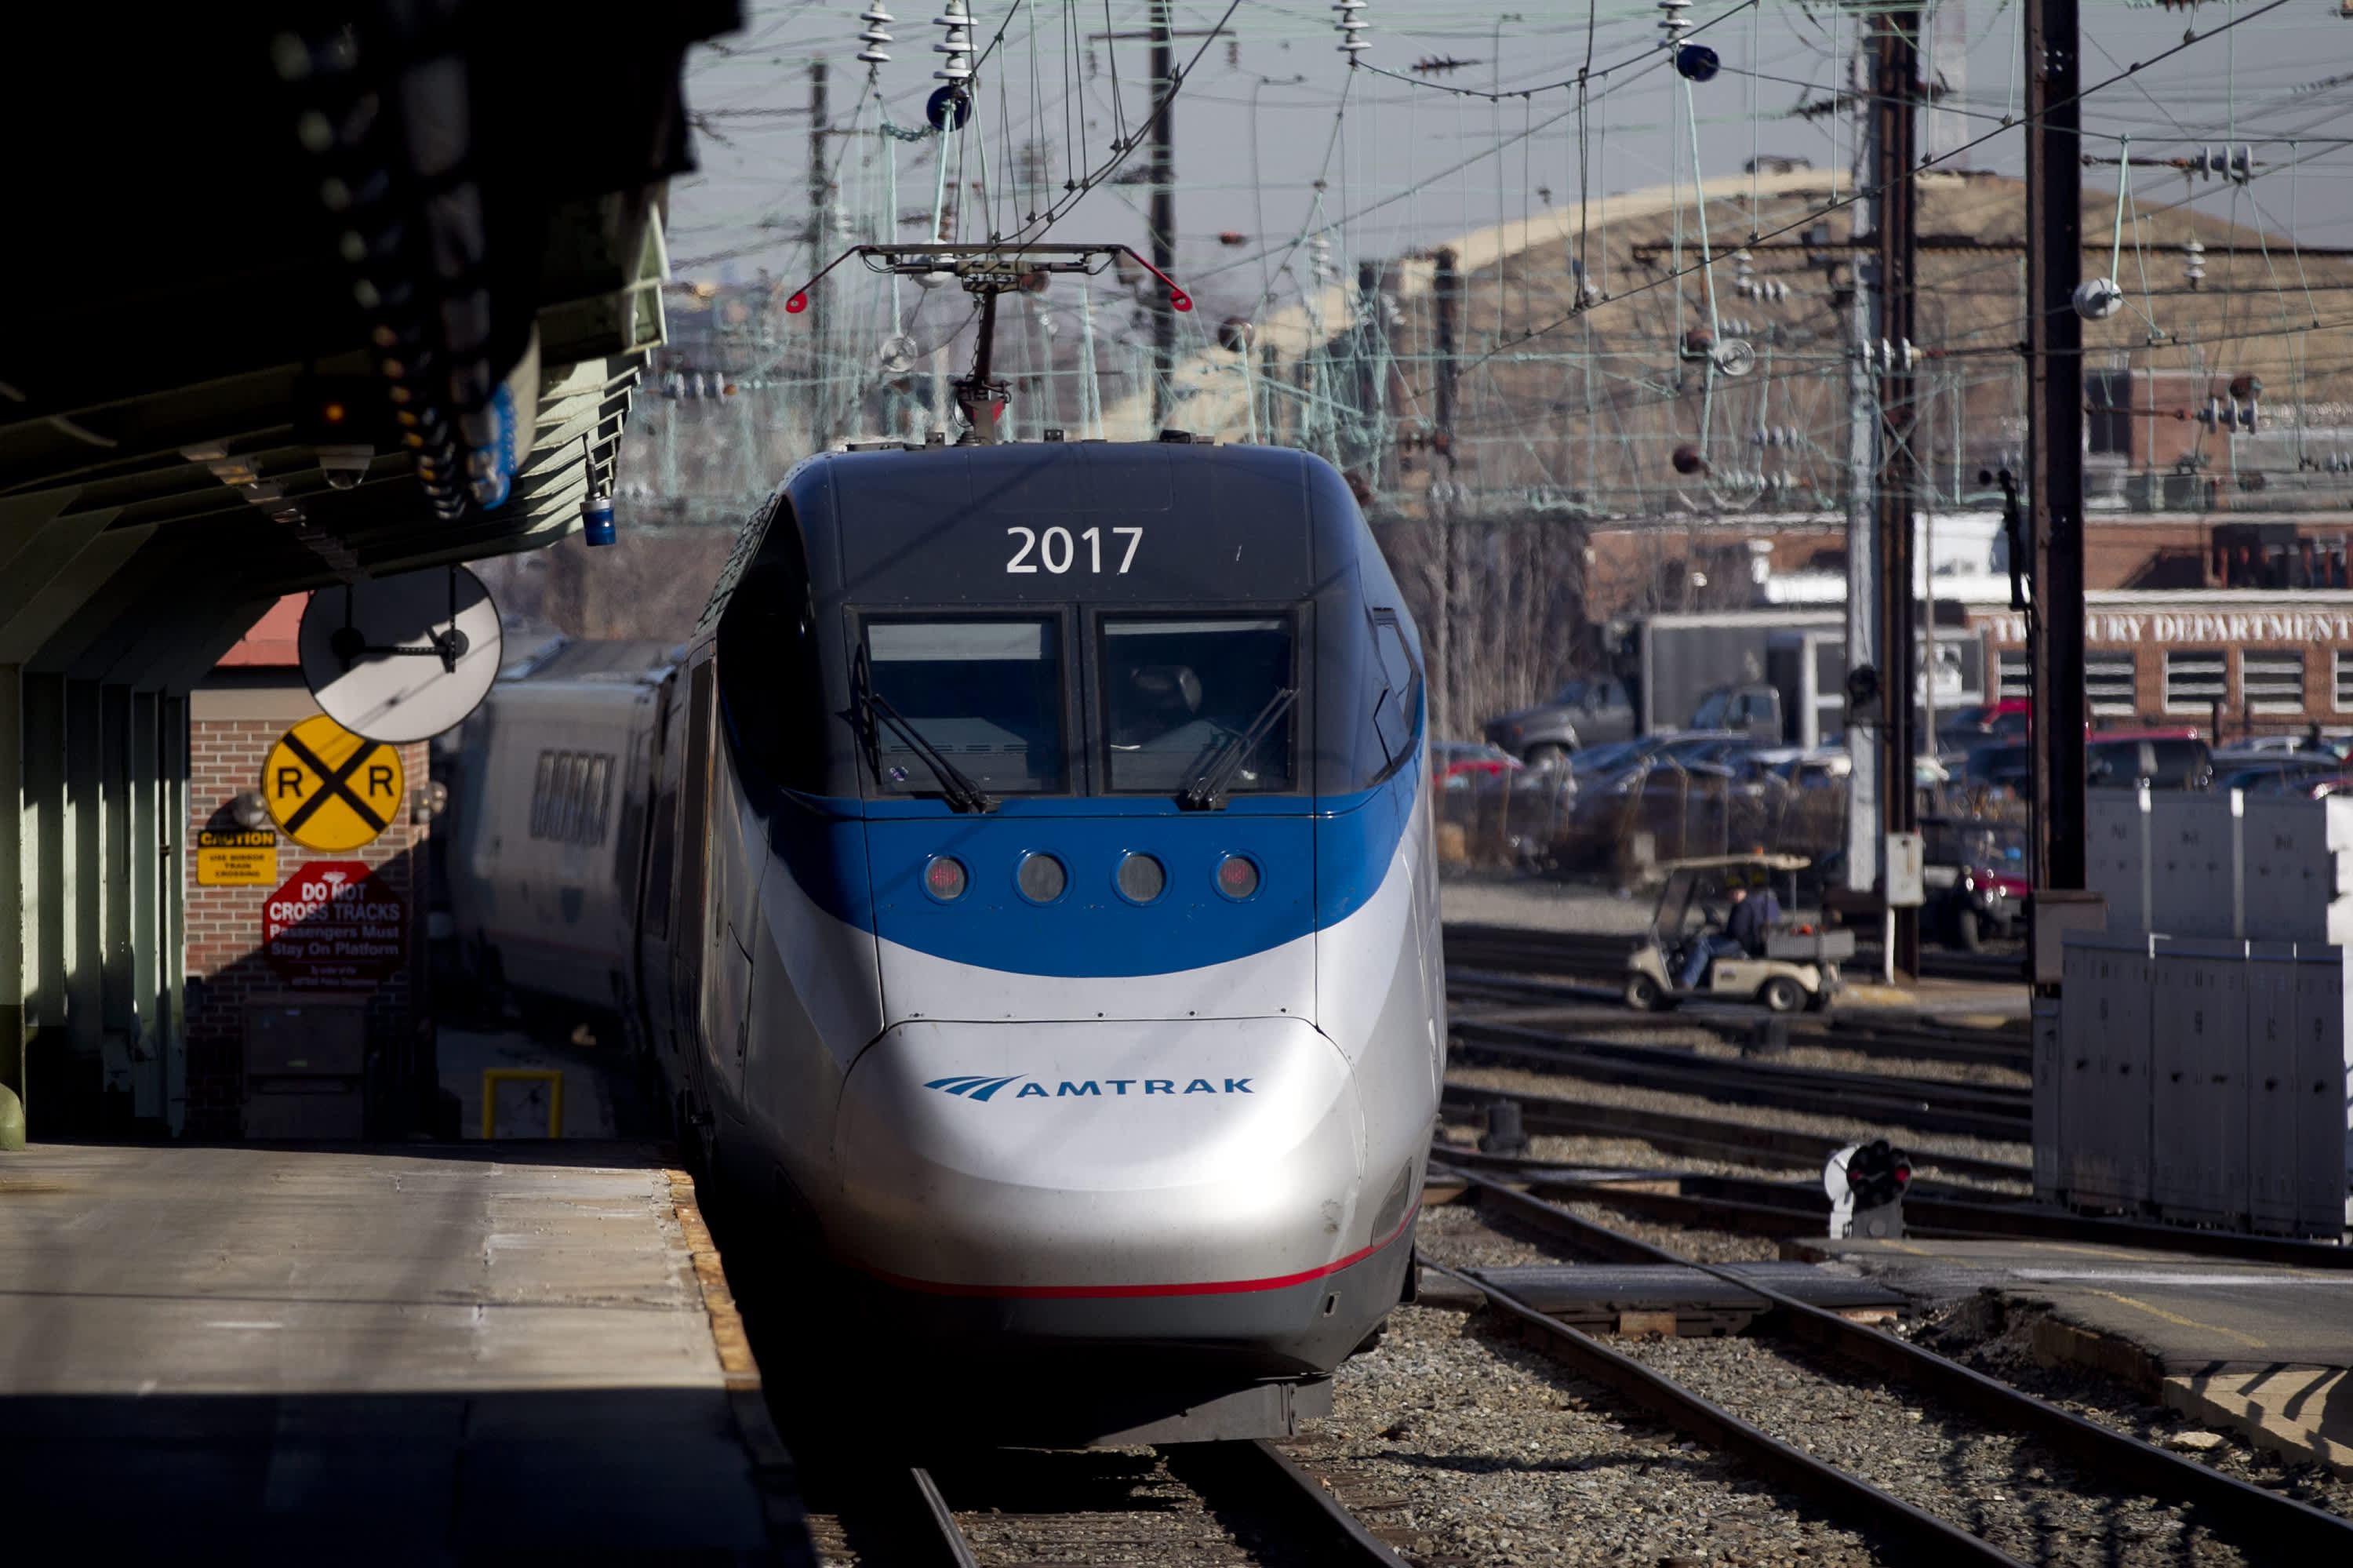 Amtrak Launches Nonstop Service Between New York City and Washington, D.C.